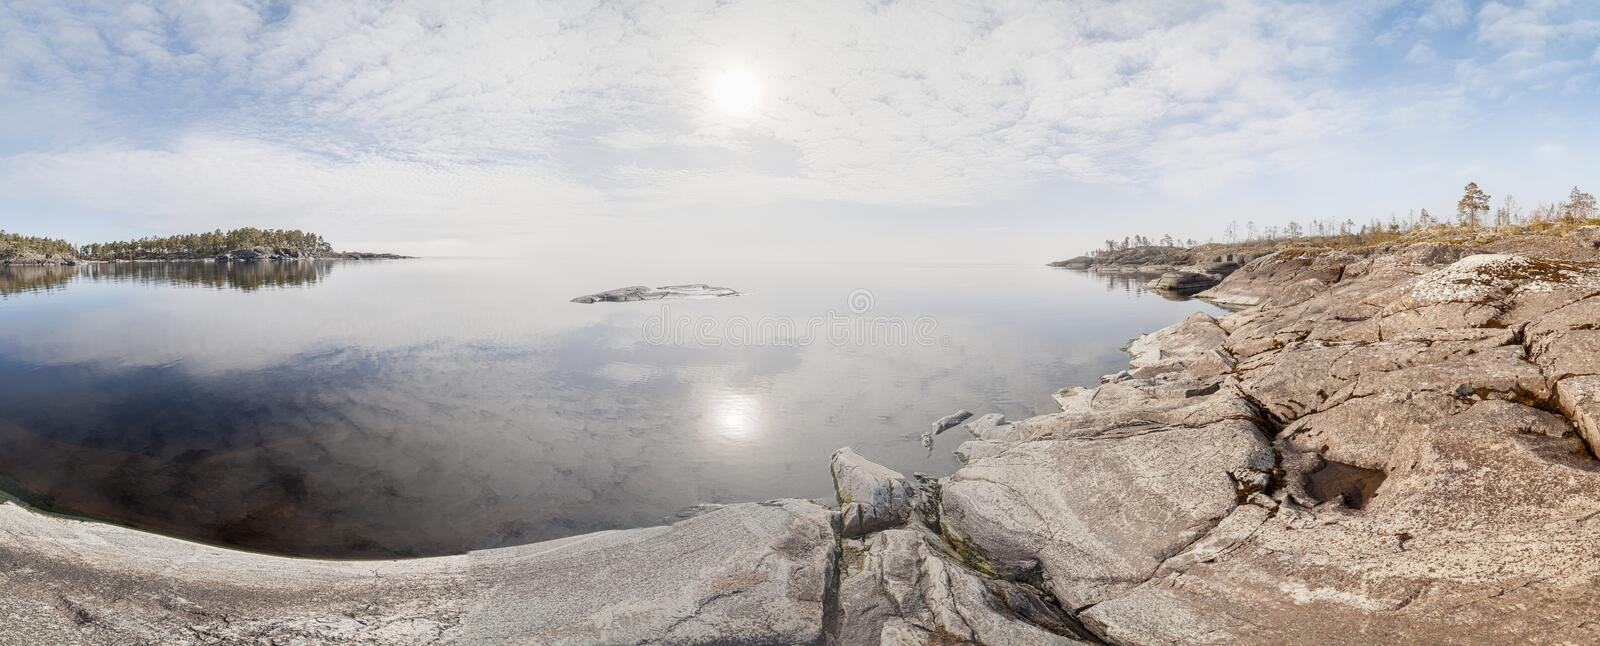 Rocky shore of the lake on a sunny day. royalty free stock photography